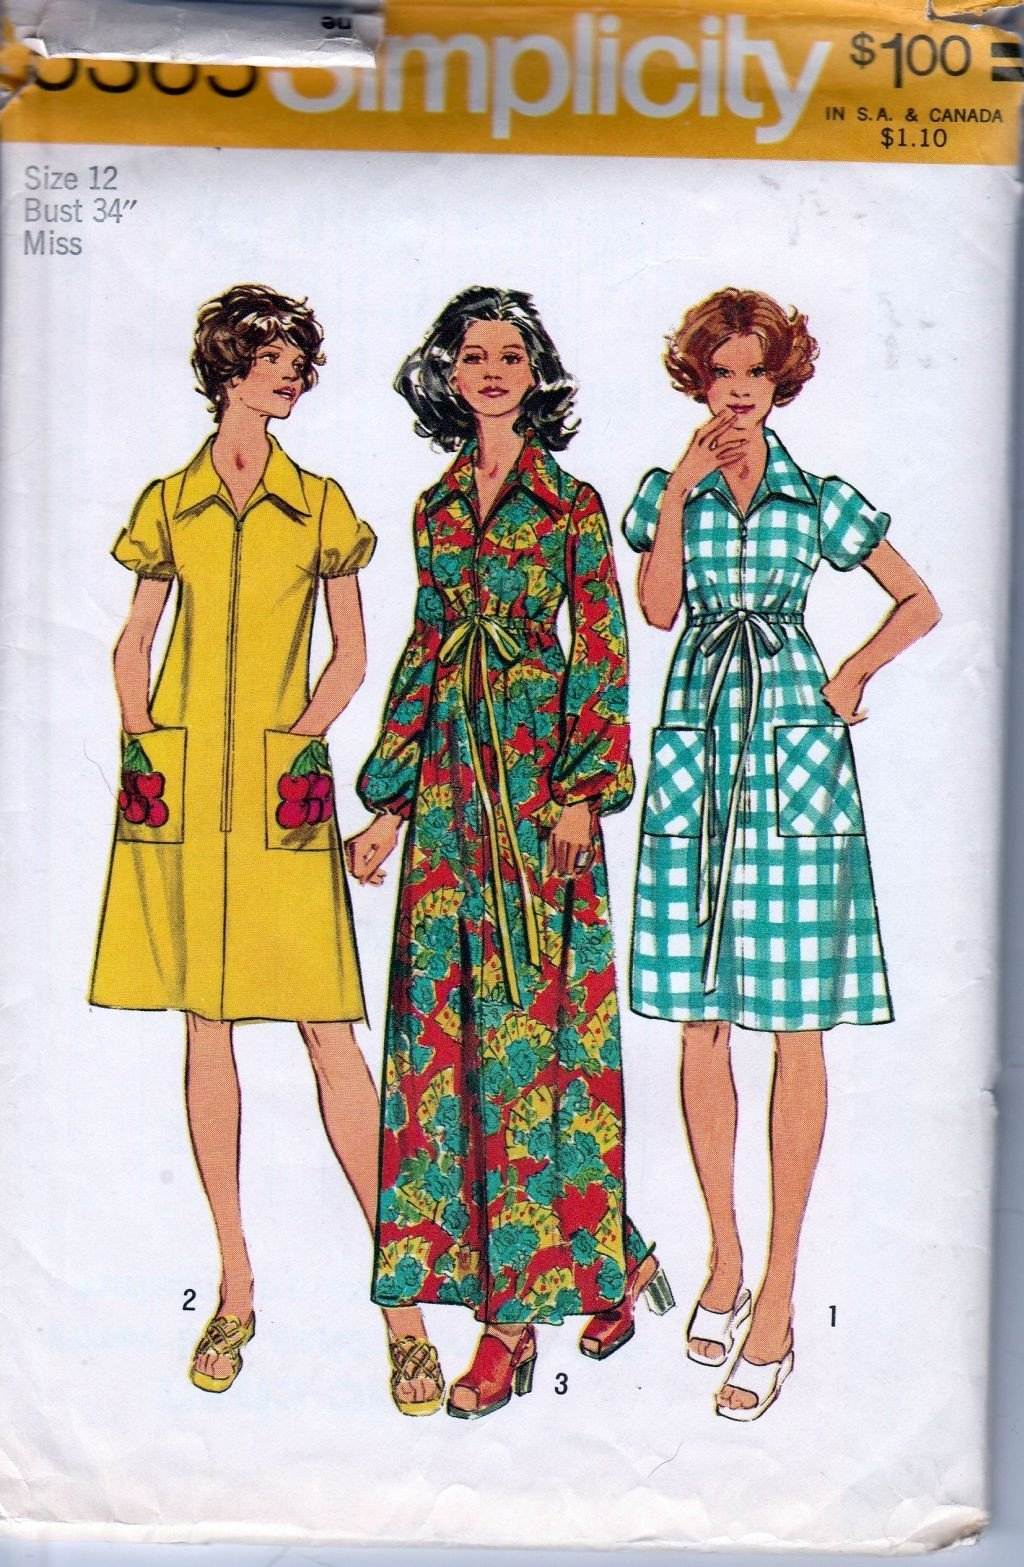 Simplicity 5365 Vintage 1970's Sewing Pattern Ladies House Dress Robe Front Zip - VintageStitching - Vintage Sewing Patterns